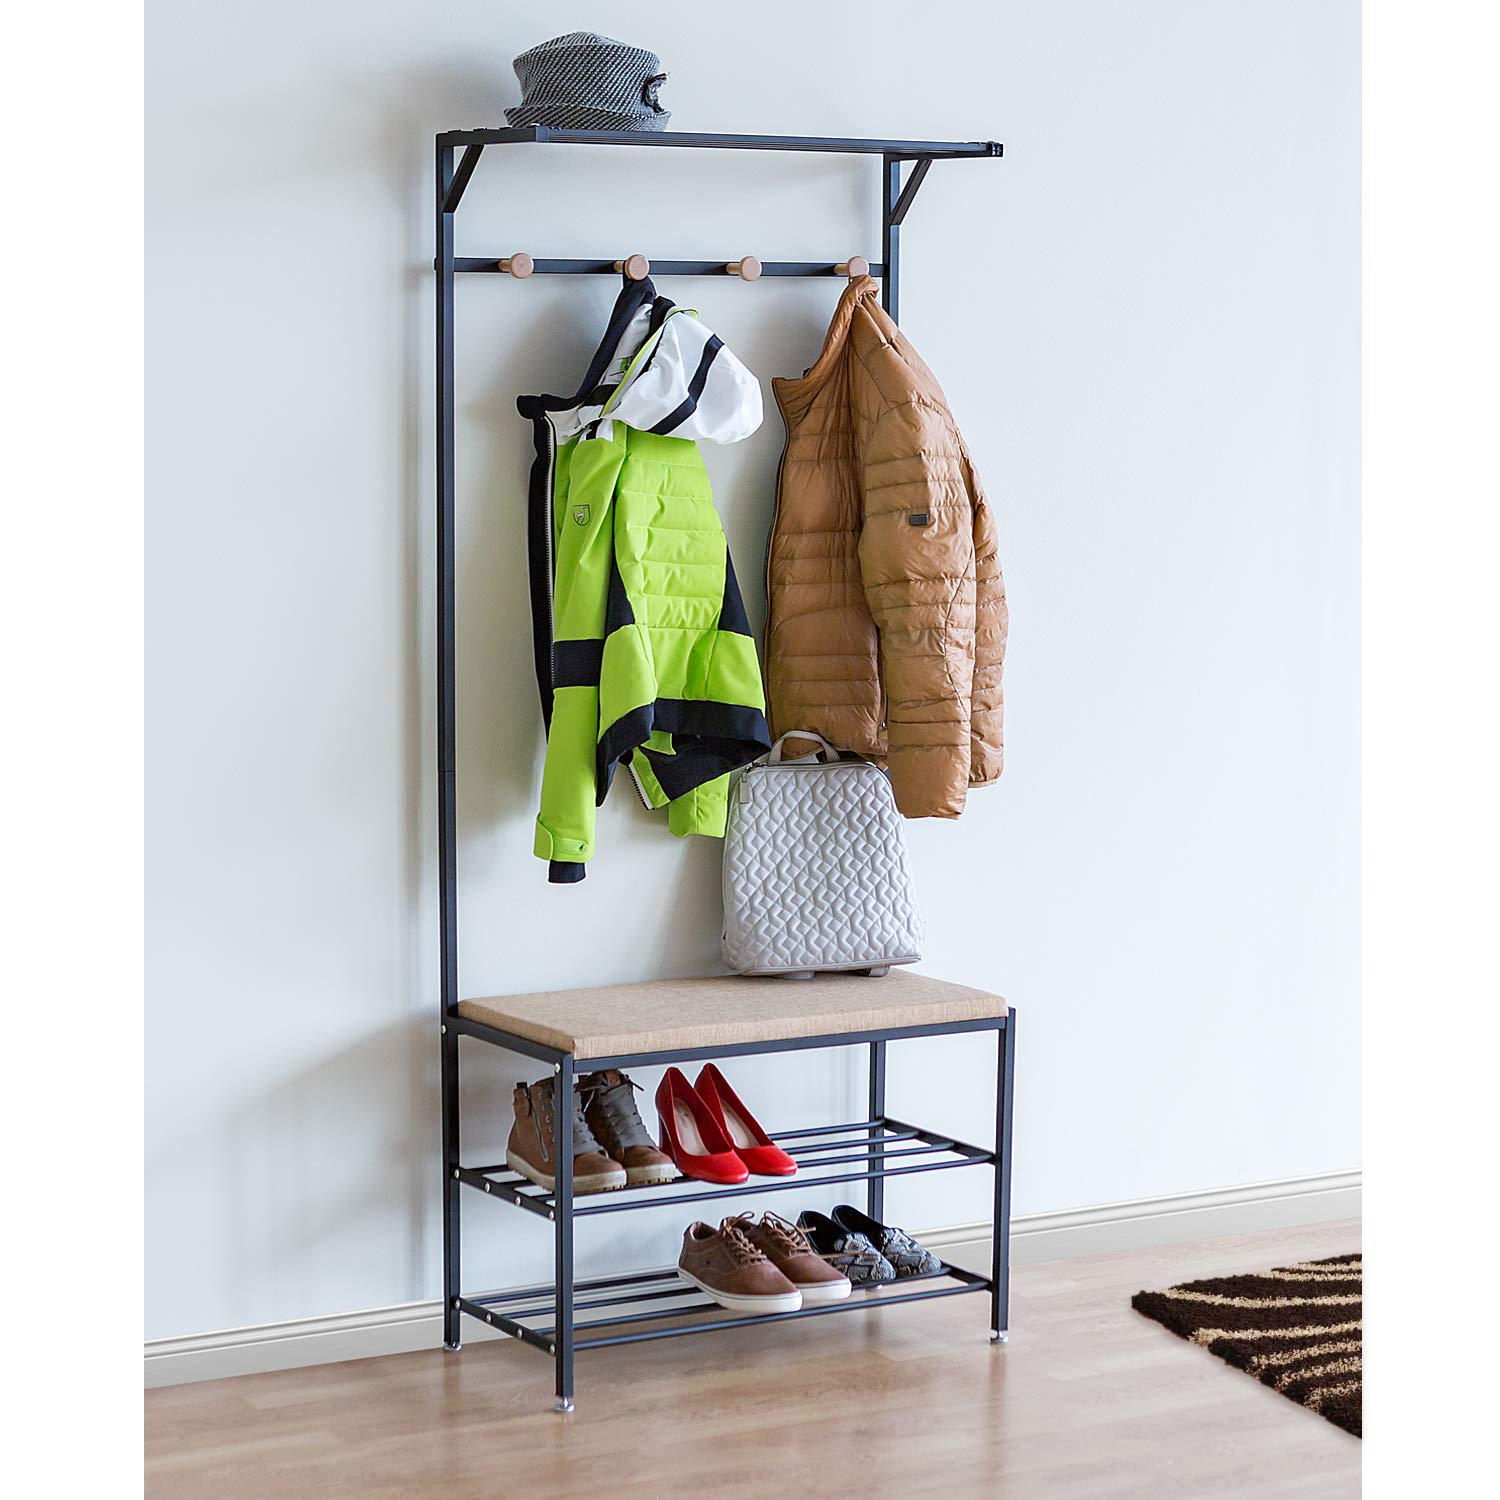 Tatkraft Solution Entryway Coat Rack Bench Shoe Rack, Coat Stand with Metal Frame, 2-Tier Shoe Rack, Strong, Stylish and Durable